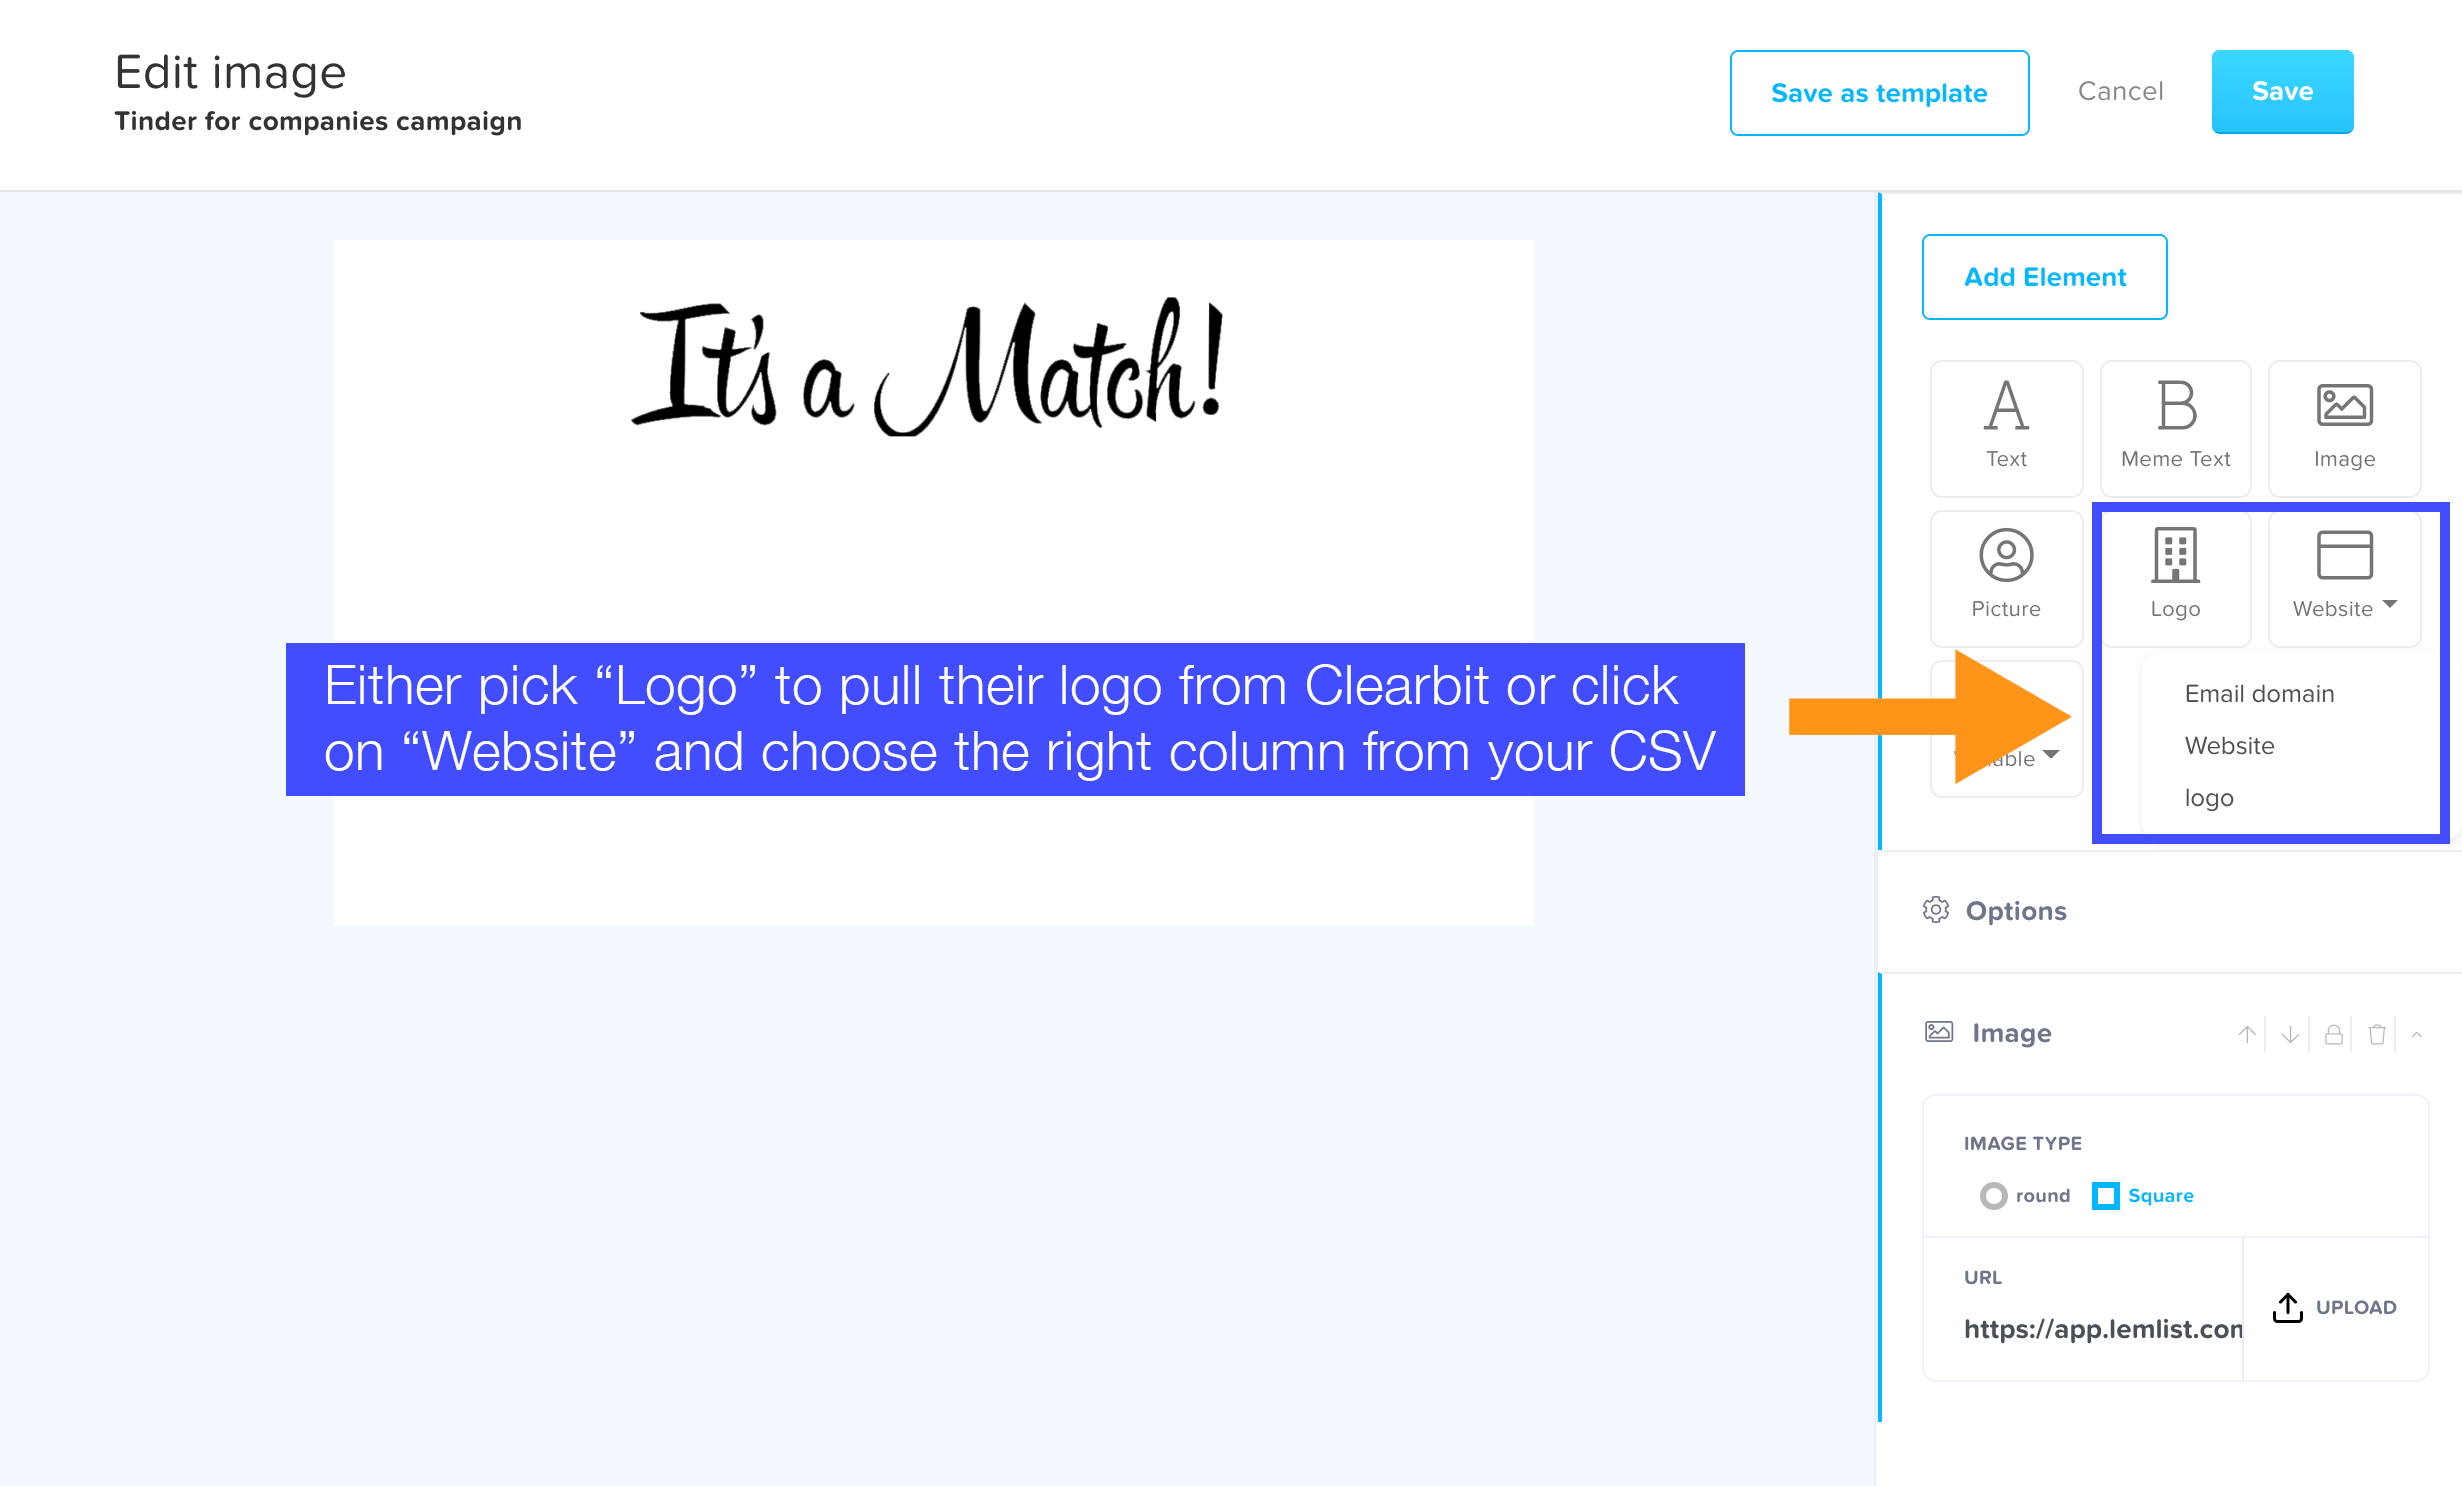 personalize image in lemlist